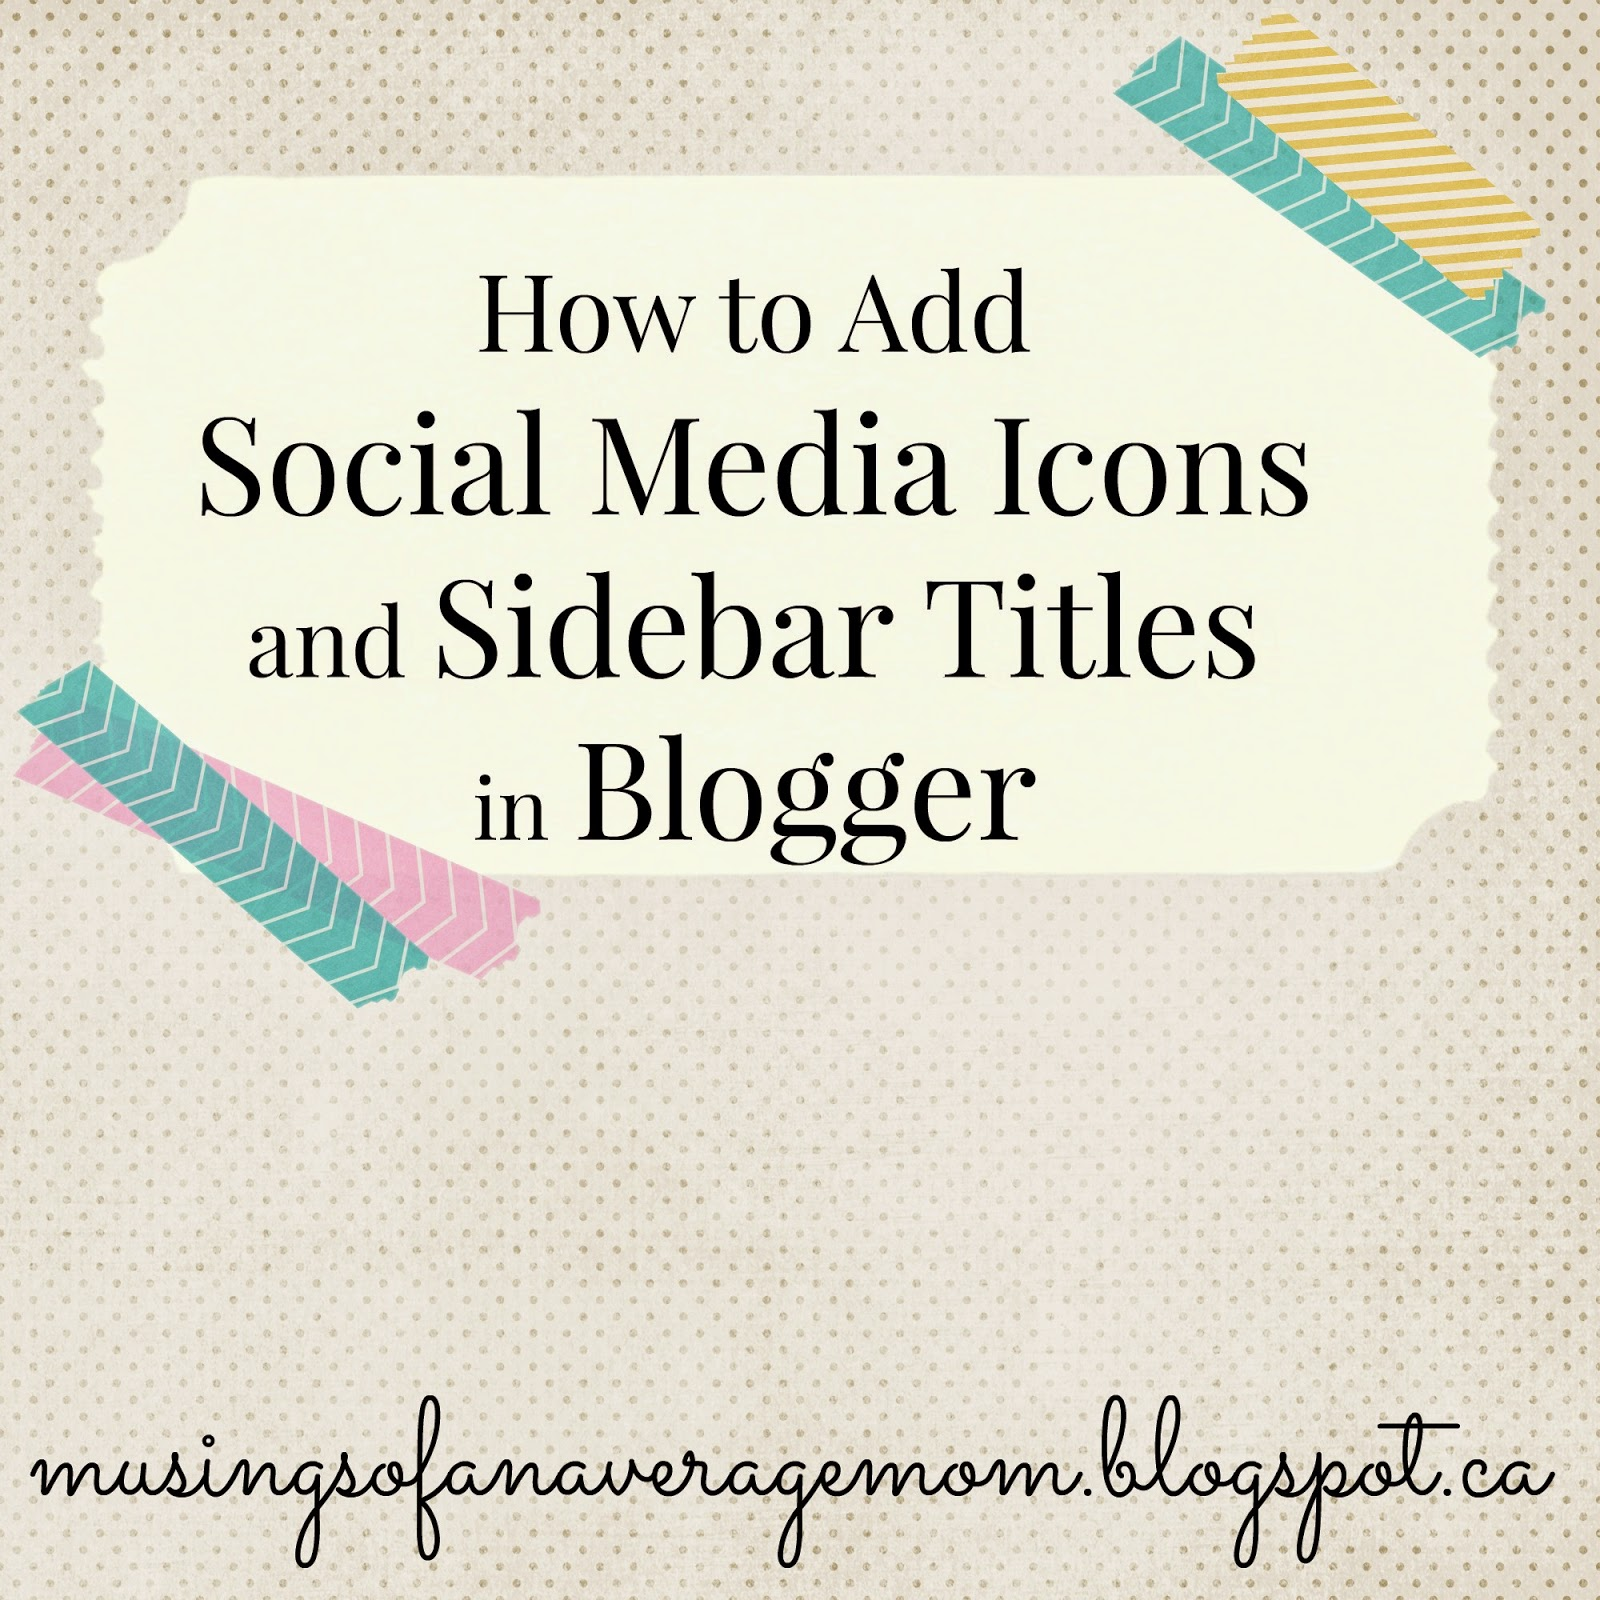 how to add social media icons to email signature mac